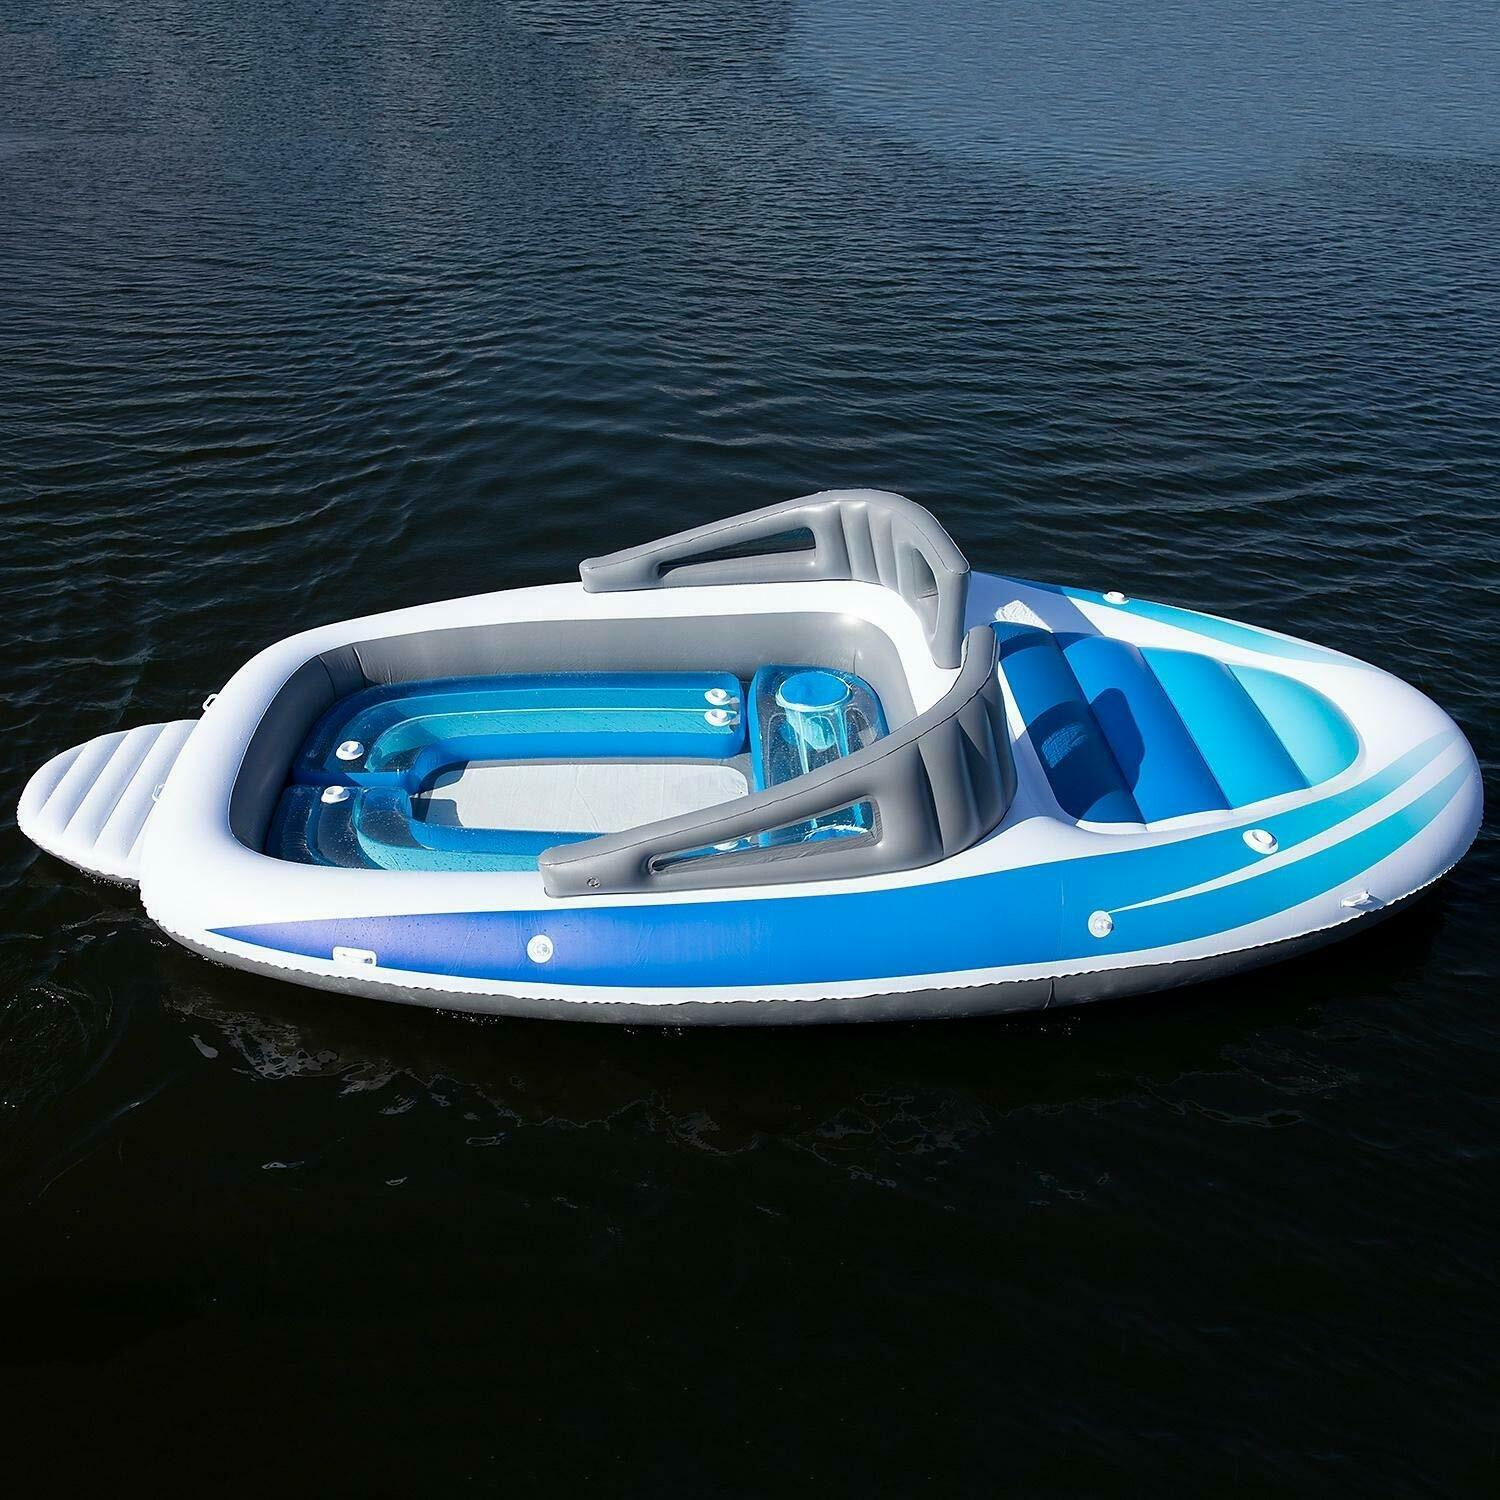 6-Person Inflatable Bay Breeze Boat Island Empty